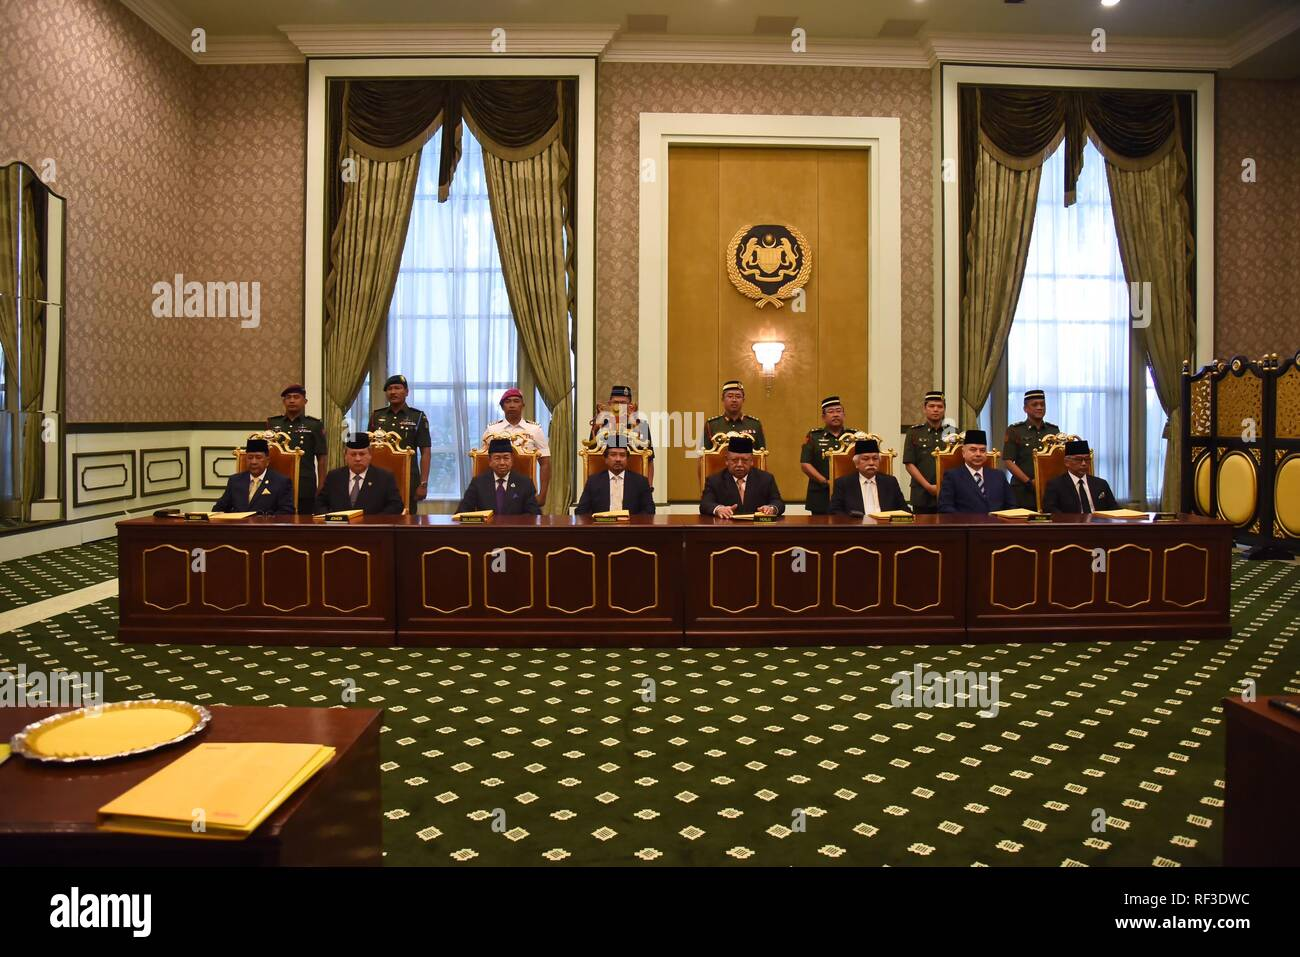 Kuala Lumpur, Malaysia. 24th Jan, 2019. Malaysia's Conference of Rulers is held at Istana Negara (National Palace) in Kuala Lumpur, Malaysia, Jan. 24, 2019. Malaysia's Conference of Rulers on Thursday named Sultan Abdullah Sultan Ahmad Shah as the country's 16th king, who serves as the constitutional head of state, state news agency Bernama reported. Credit: Jabatan Penerangan Malaysia/Xinhua/Alamy Live News - Stock Image